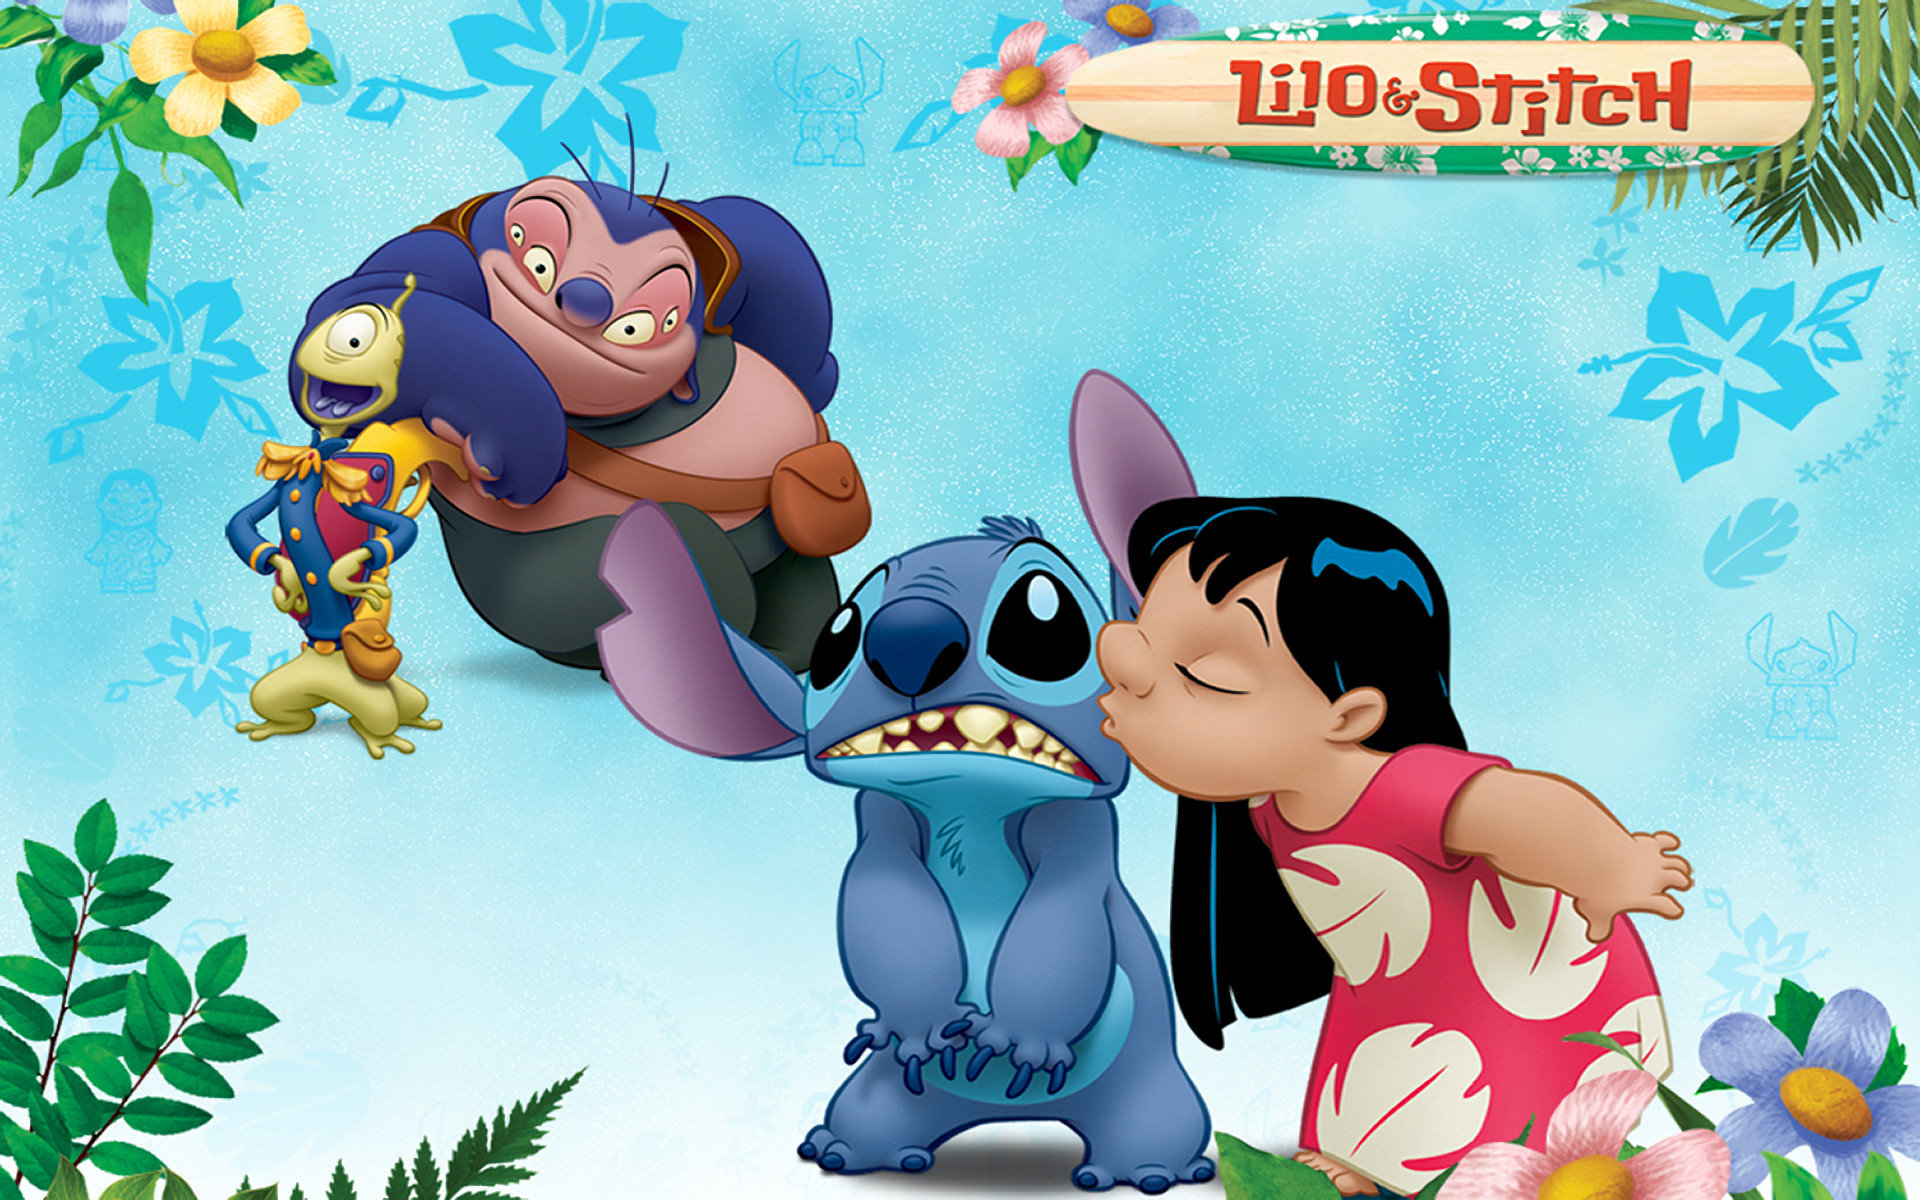 Lilo And Stitch Wallpapers 1920x1200 Desktop Backgrounds